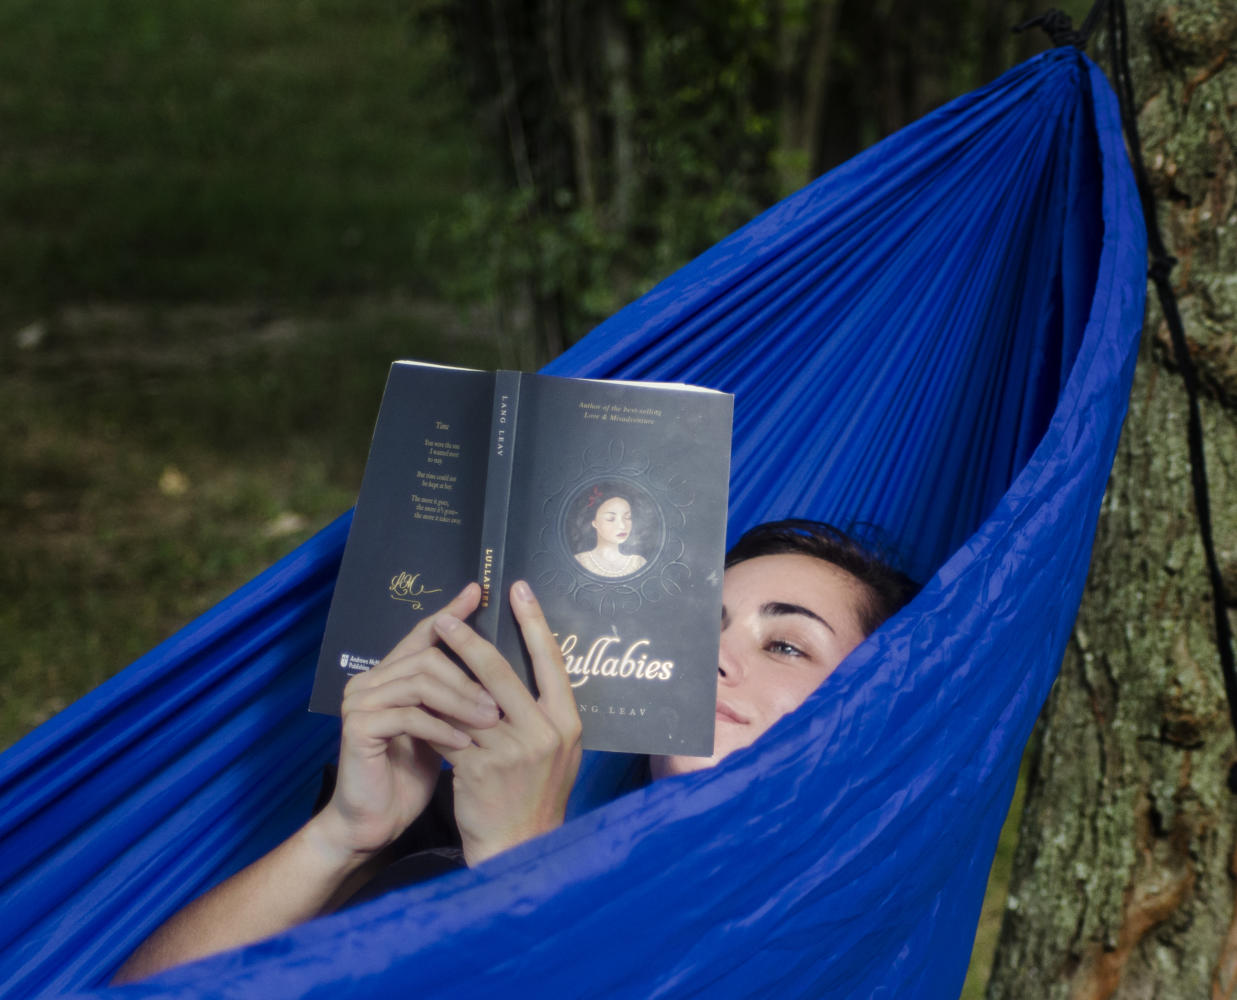 Taylor Goldtrap, a junior from Kankakee majoring in forestry, read a poetry book while relaxing in a hammock Tuesday, Aug. 22, 2017, at Thompson Point.